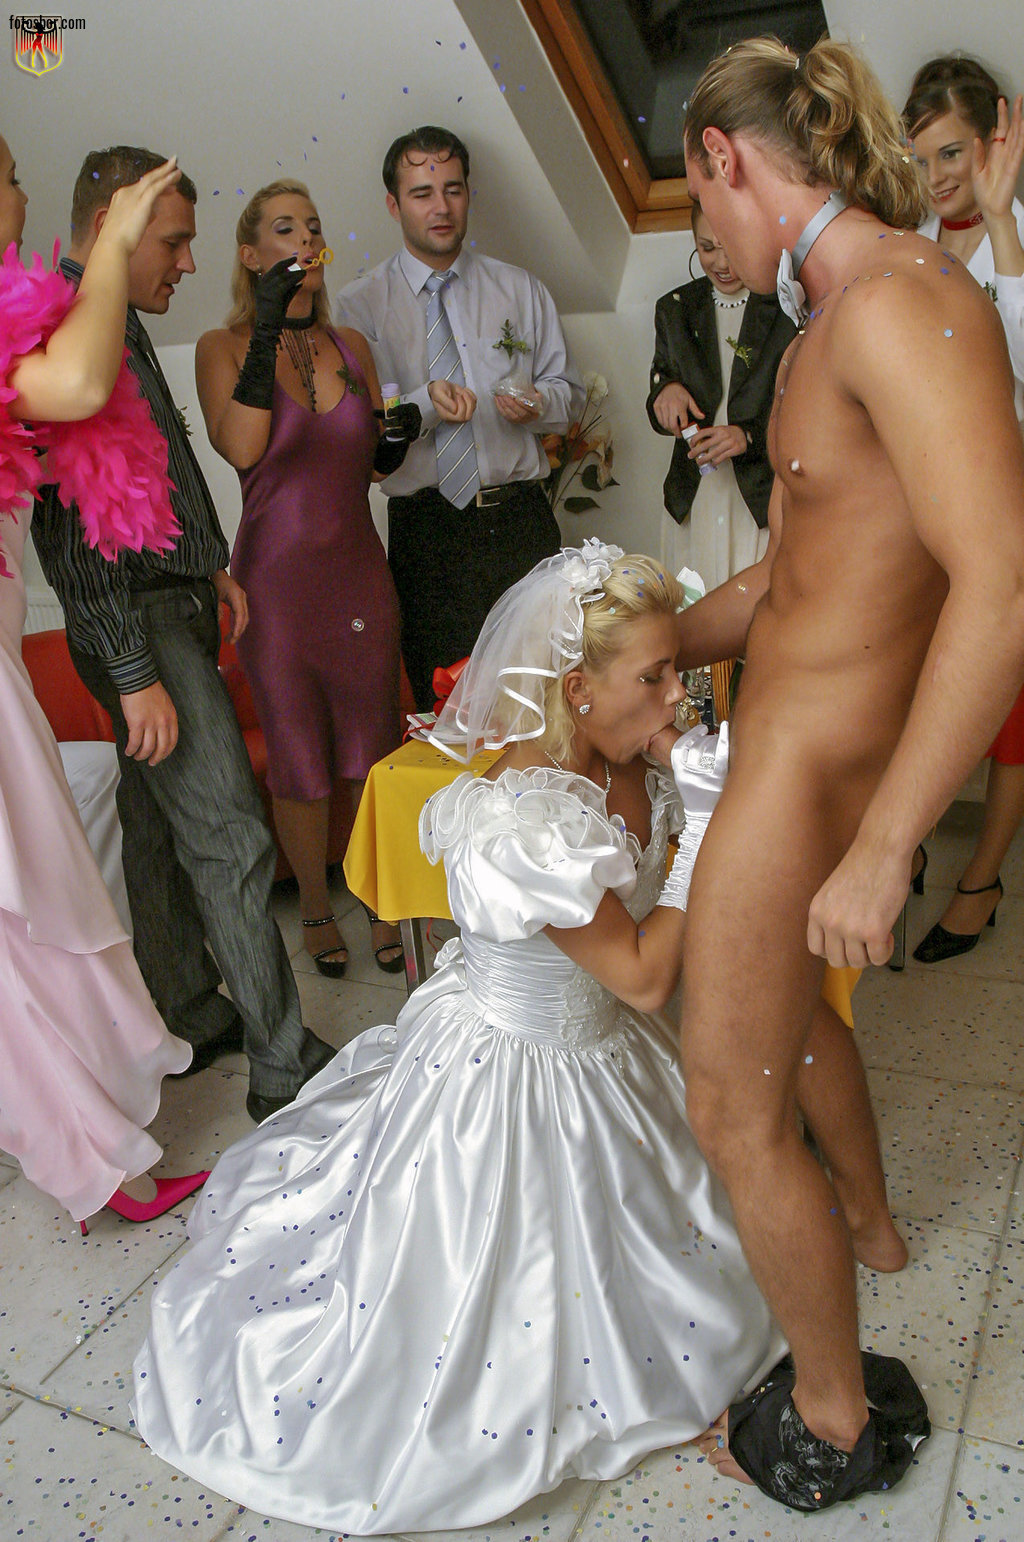 Flower girl wedding sex, wwf women naked pics